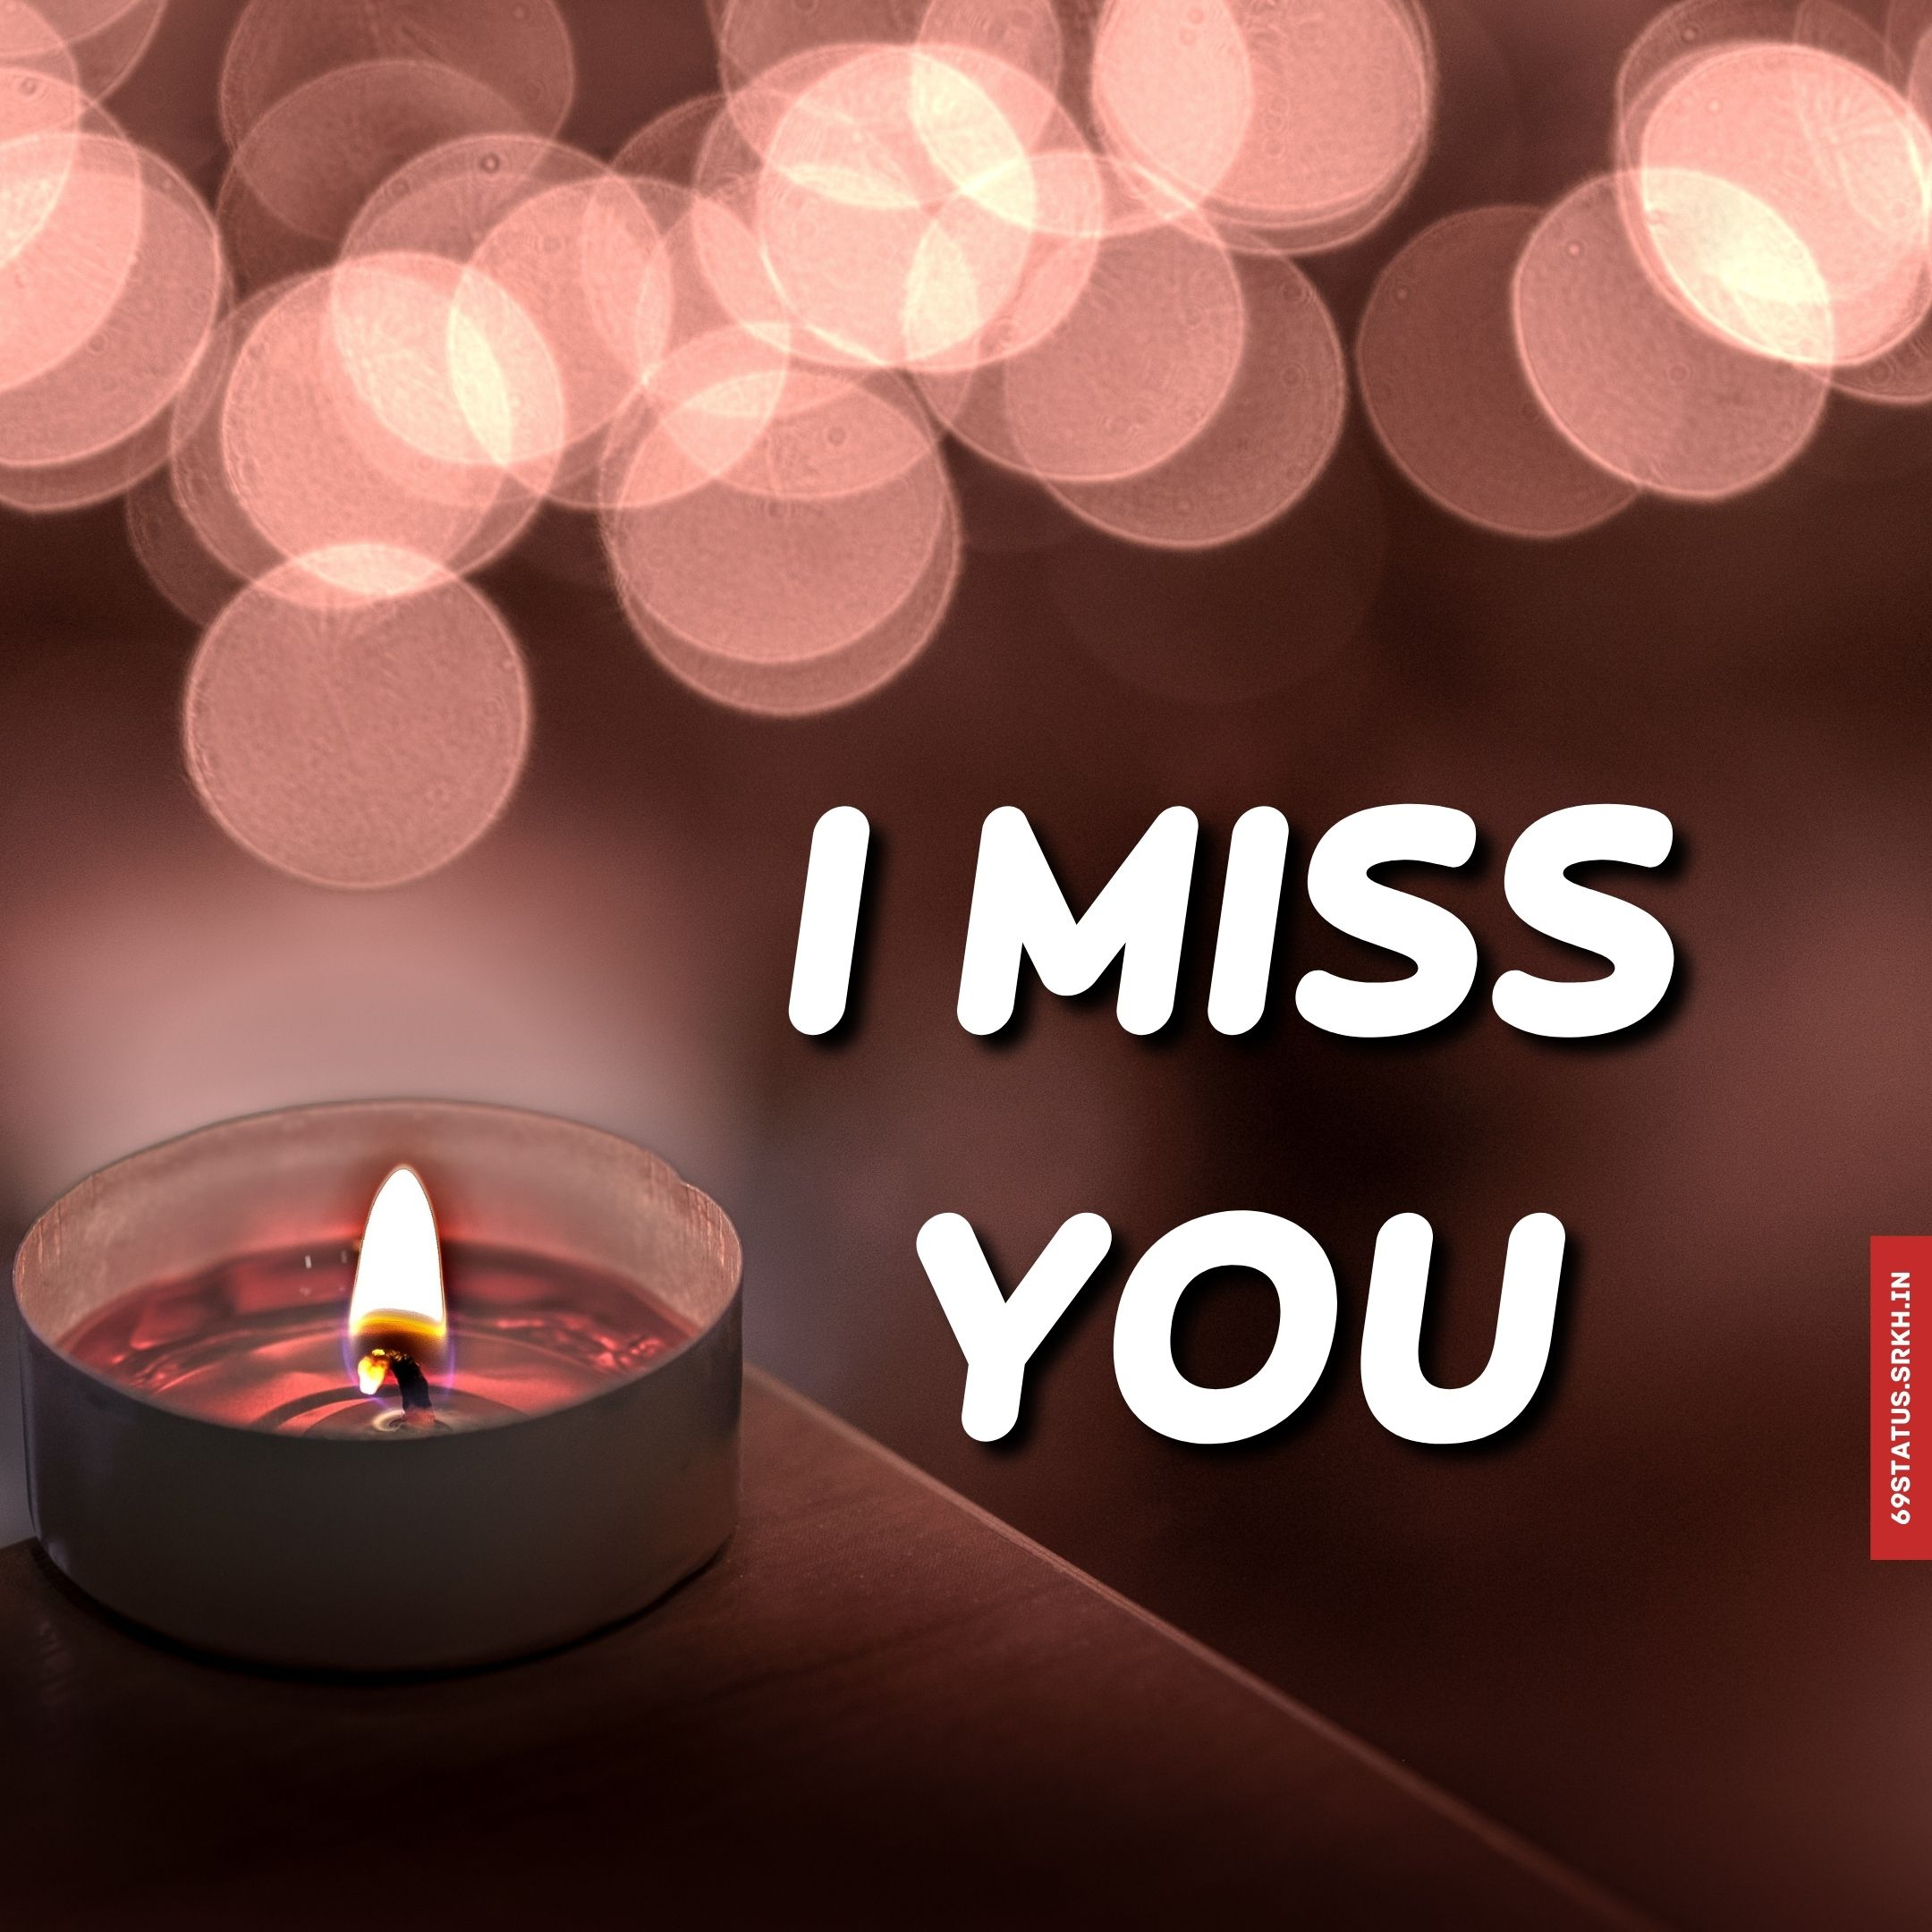 Romantic miss you images full HD free download.